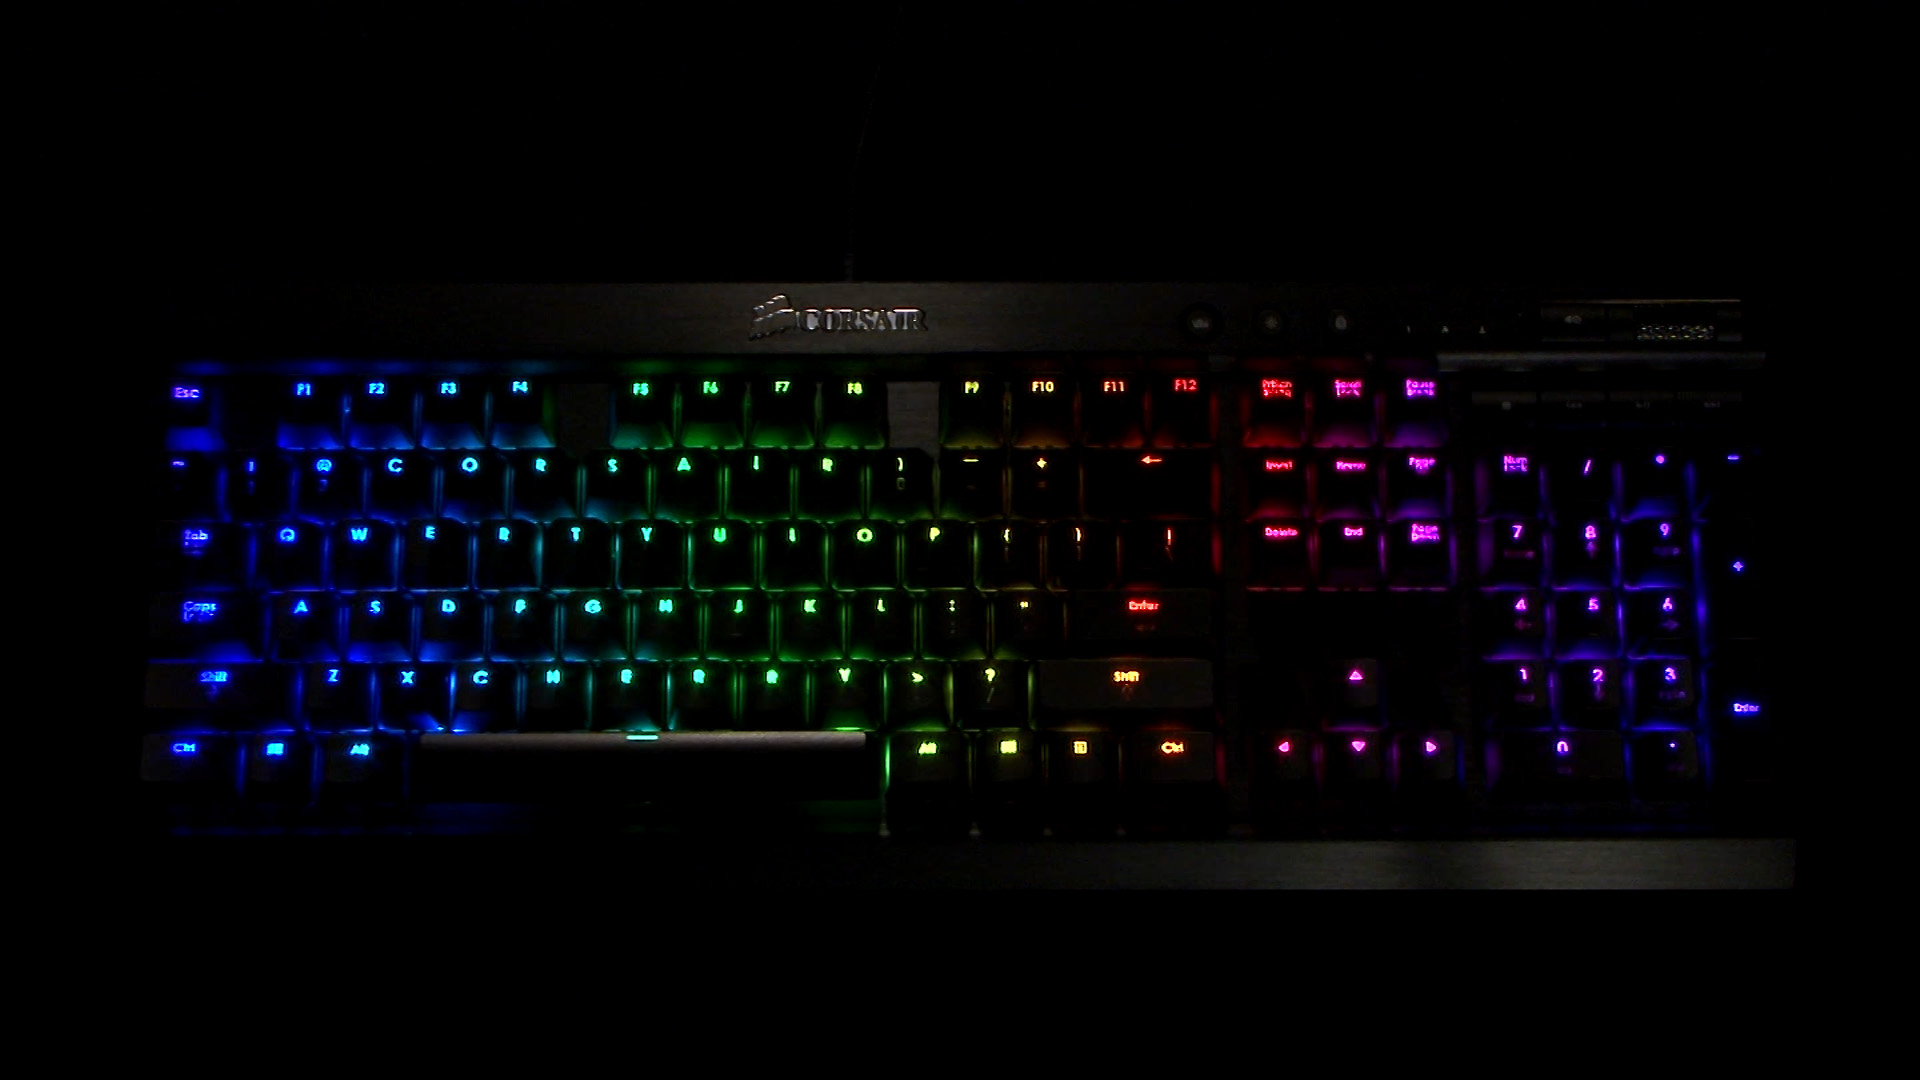 Razer Chroma Wallpaper, High Quality Razer Chroma Wallpapers 1920x1080